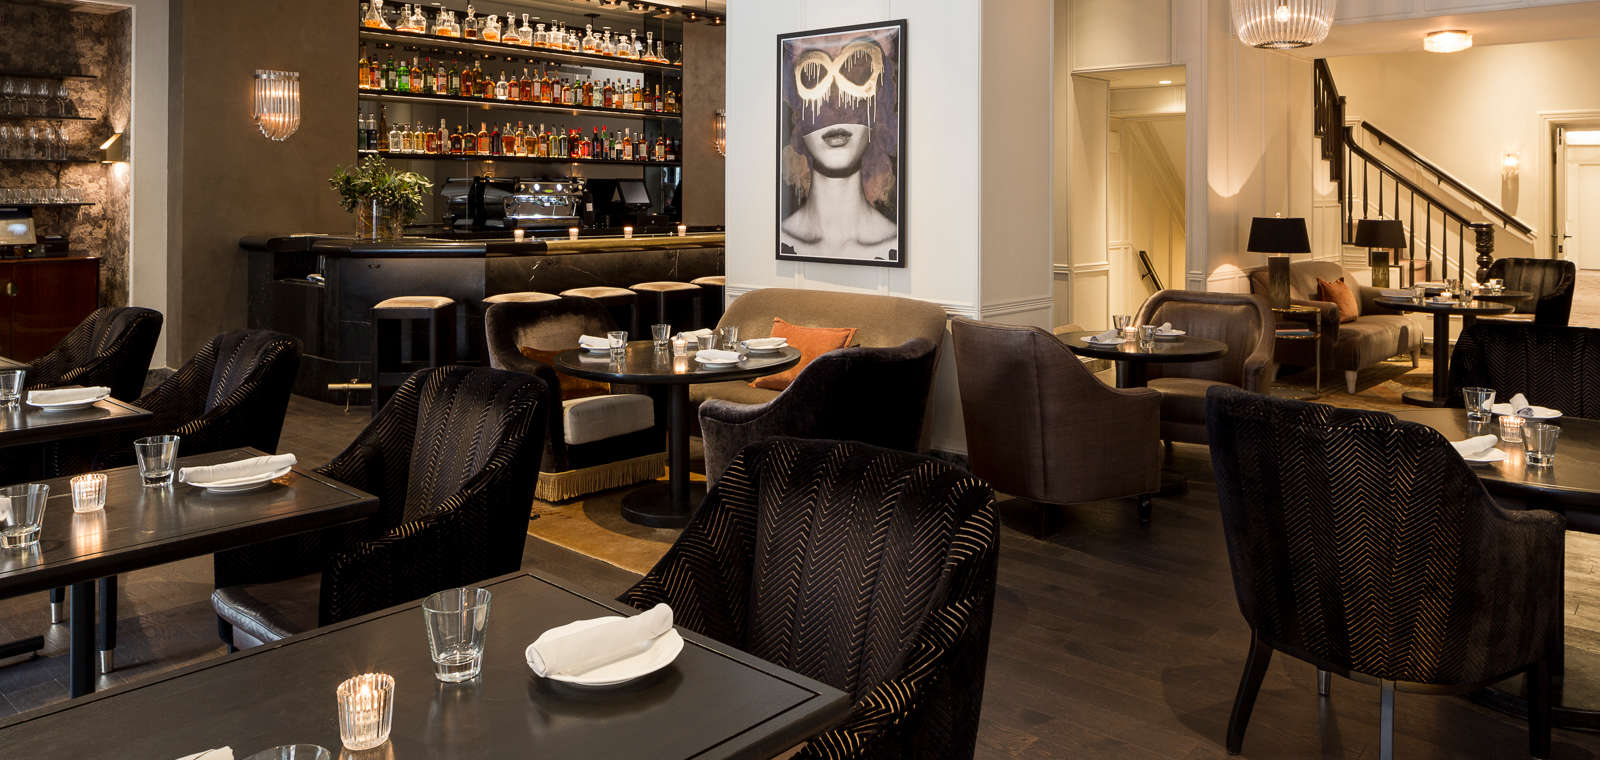 20 East, the on-property dining option at the Talbott Hotel. (Photo courtesy of the hotel)